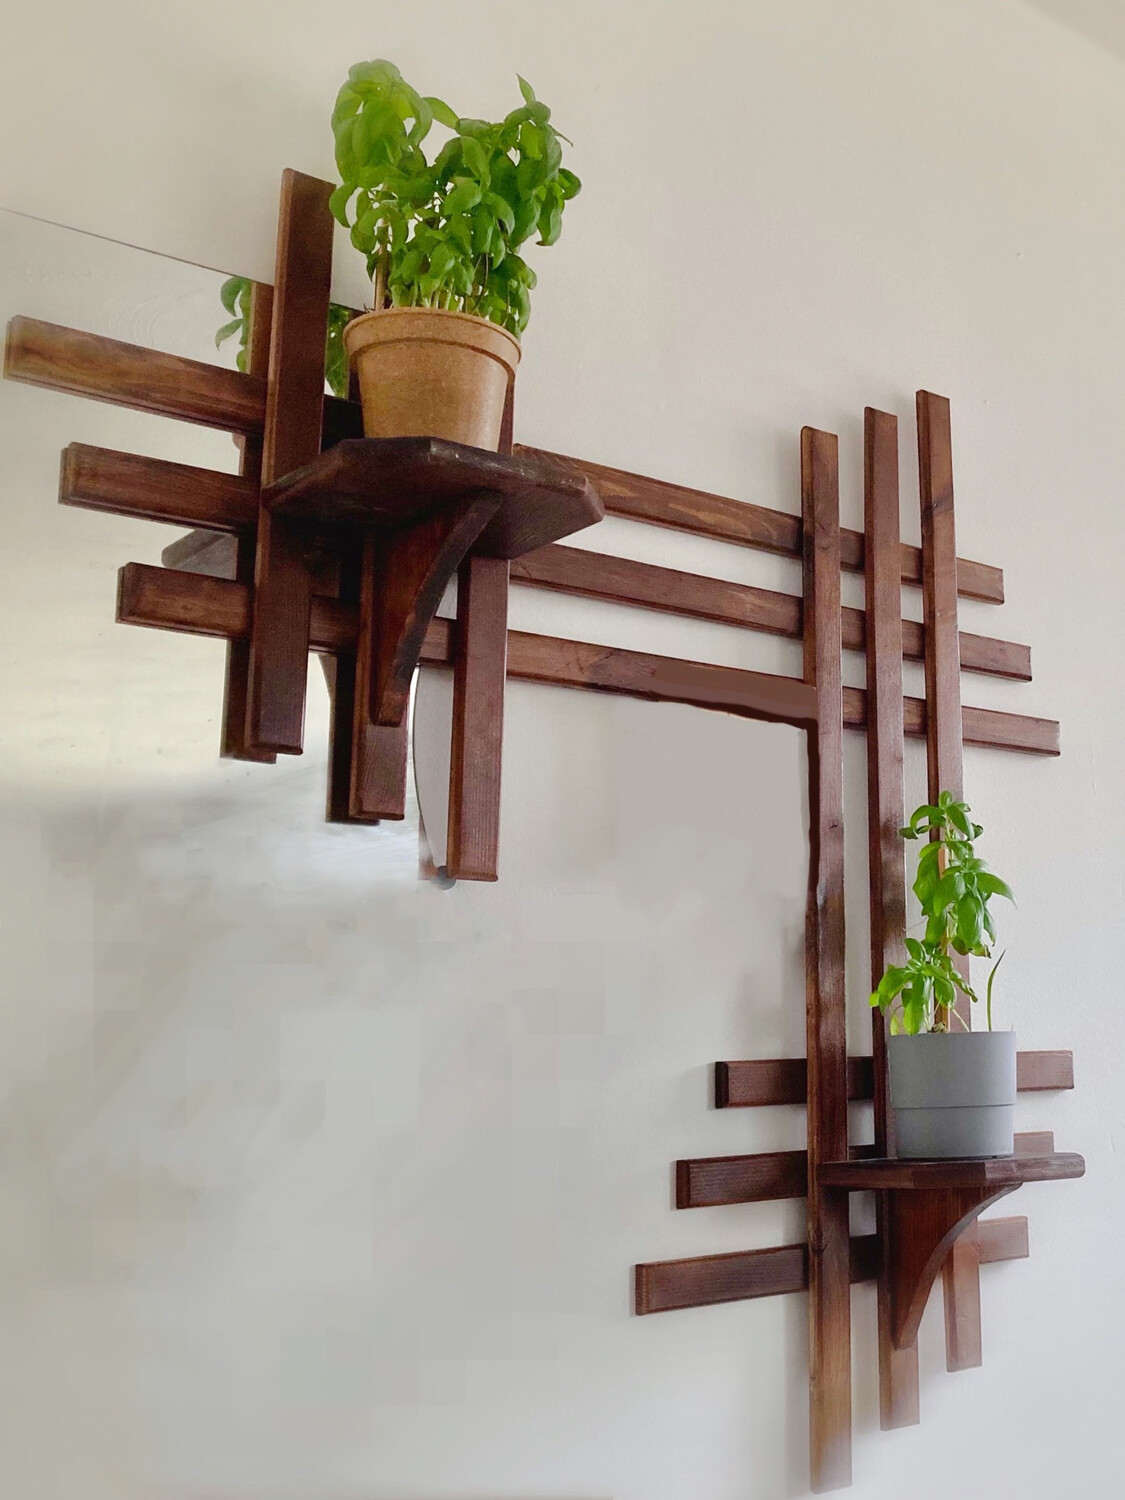 Asymmetrical Wall Shelf With Stands For Plants/display